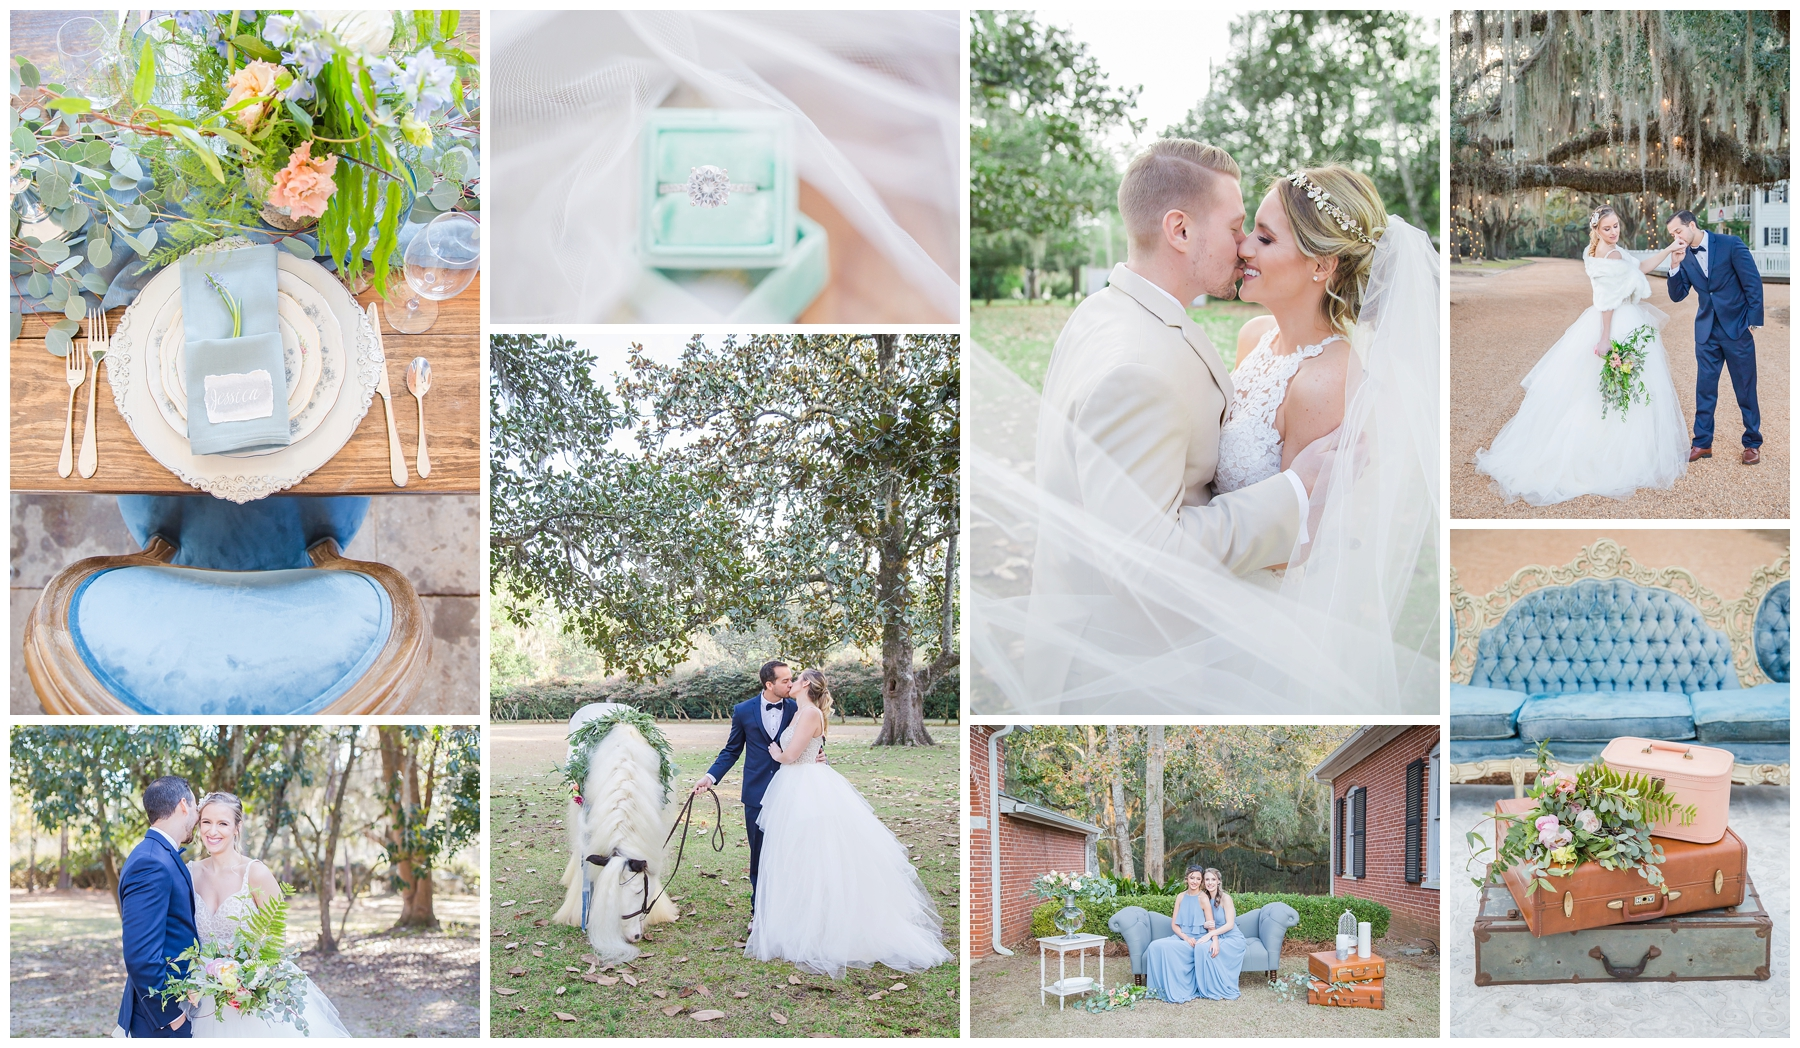 Dusty Blue Styled Shoot! Oh it was simply gorgeous!